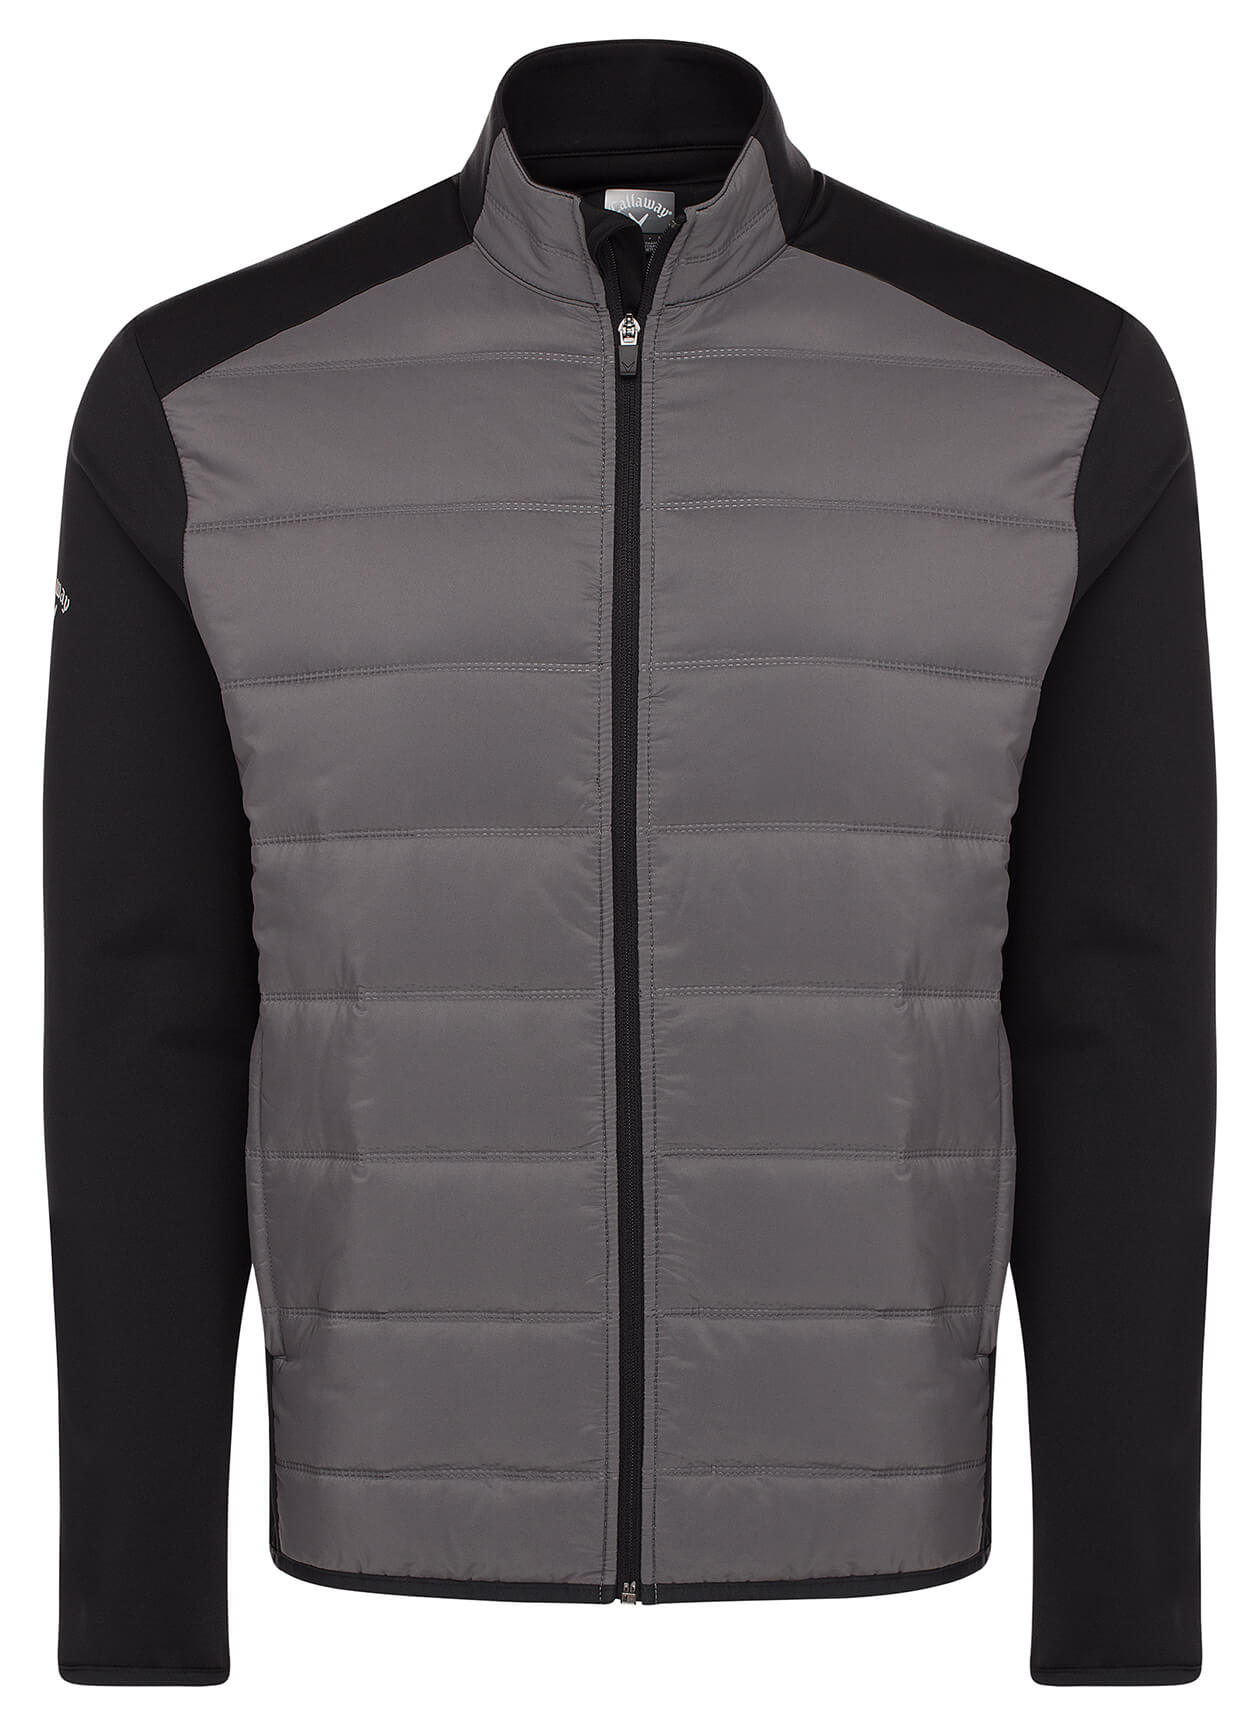 Callaway Golf Men's Ultrasonic Quilted Jacket